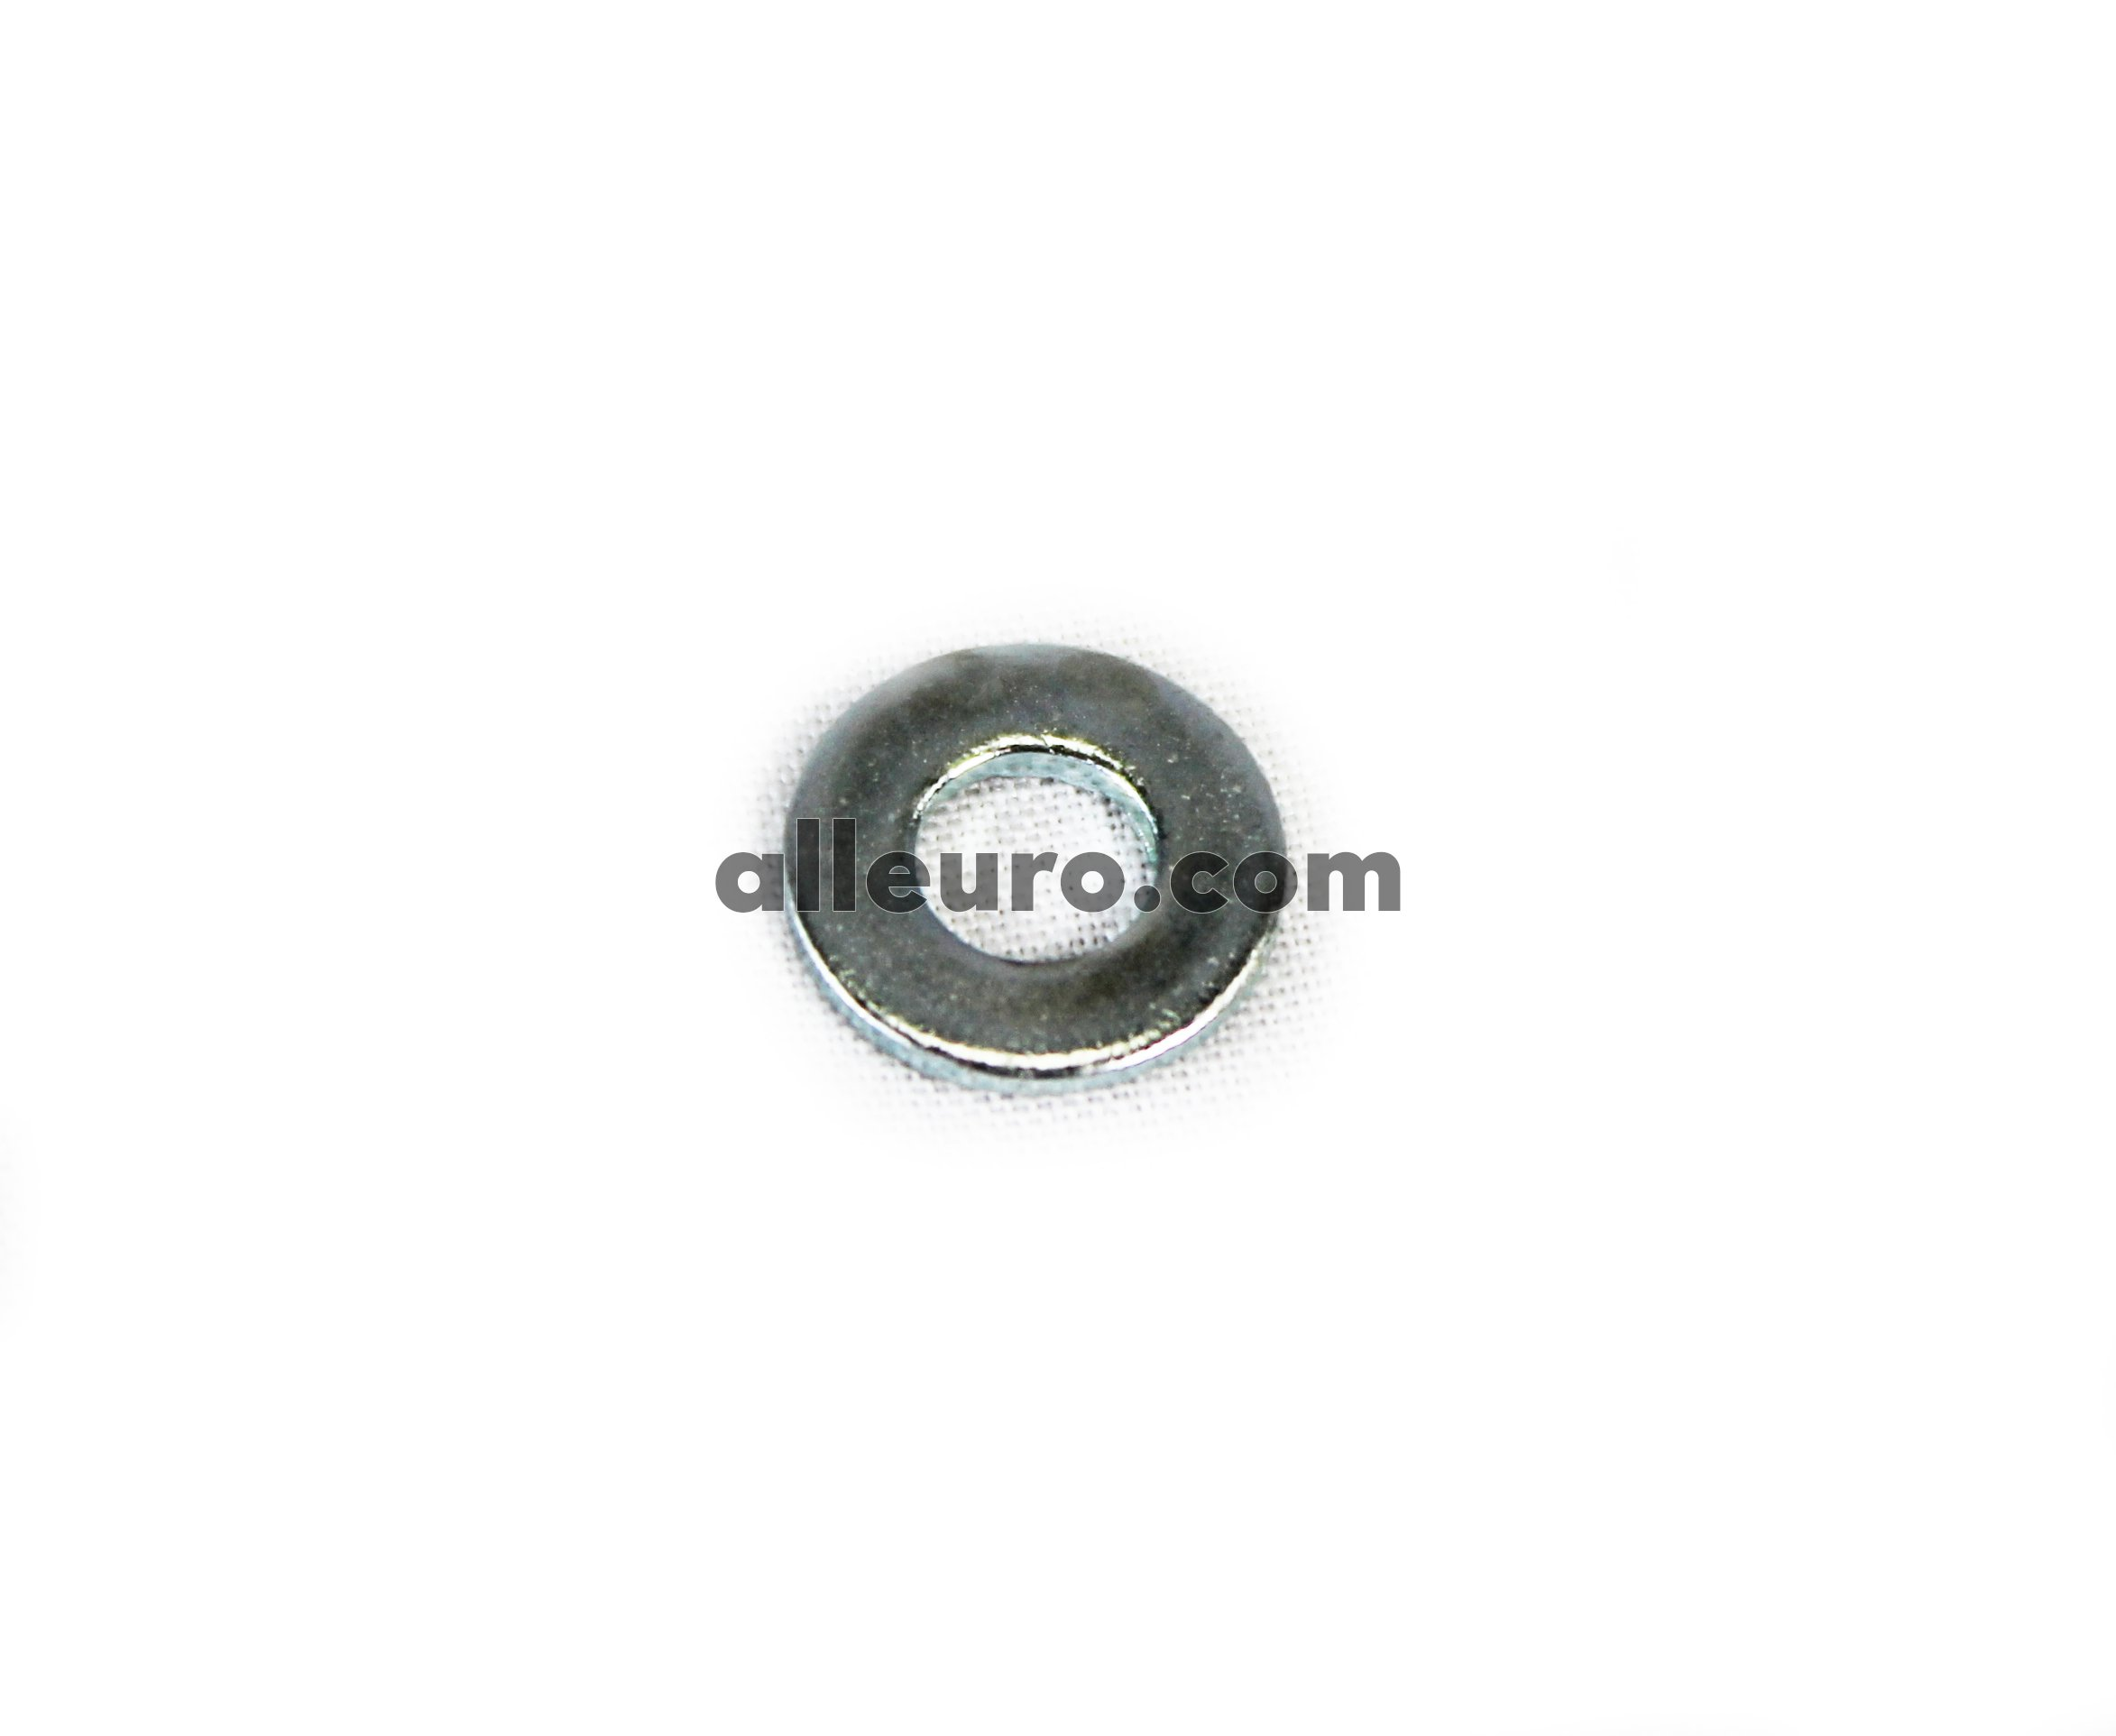 Shop Supply Washer / Lock / Spring / Flat Only N-011-522-2 - FLAT WASHER, 4mm